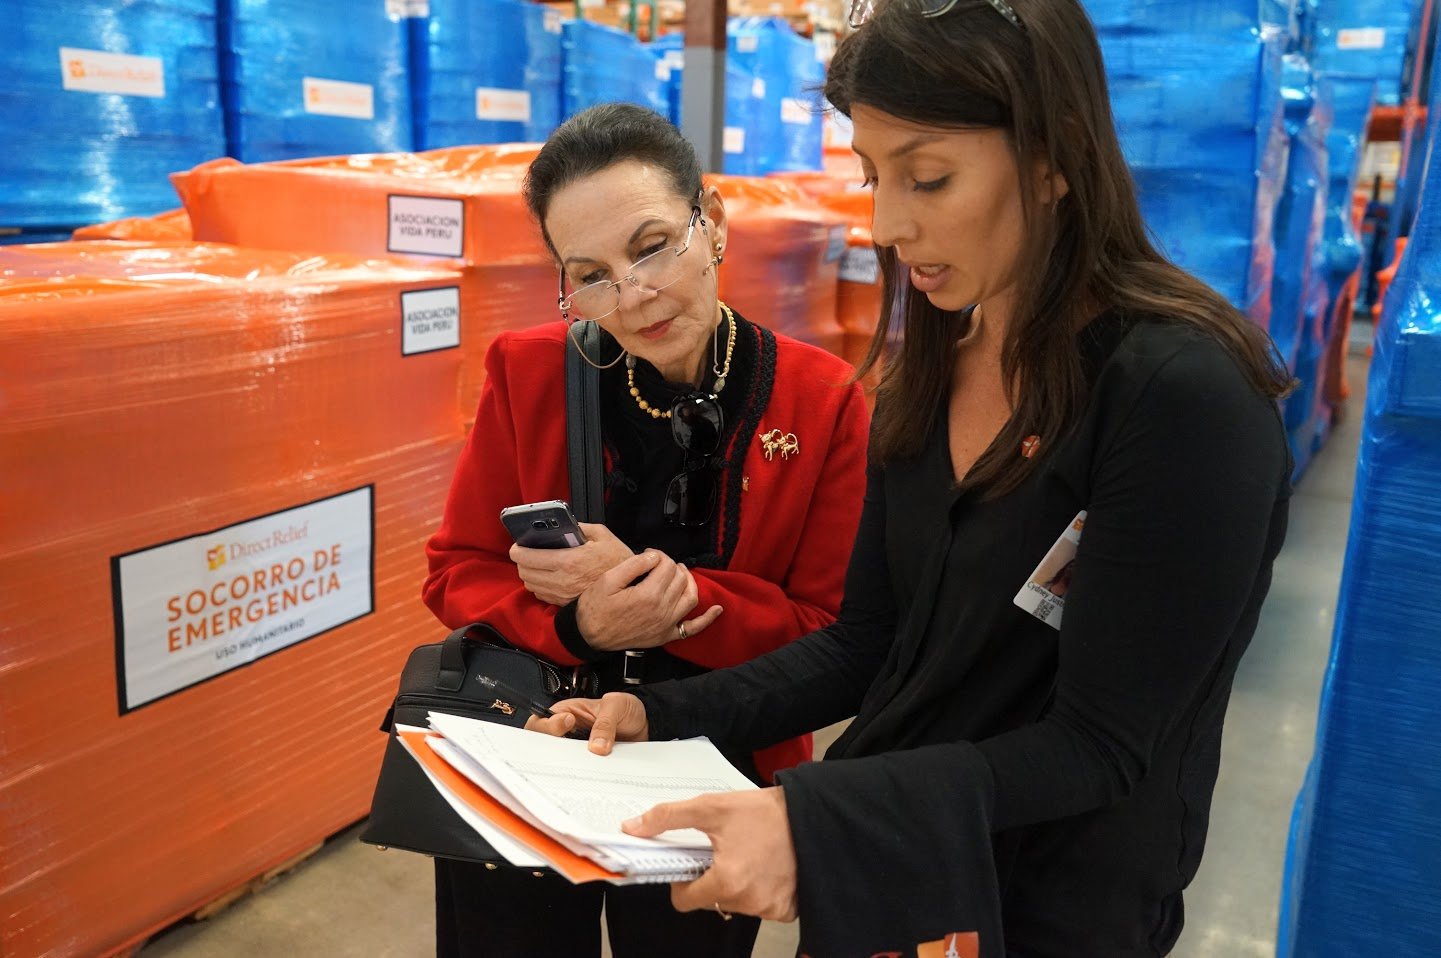 Ambassador Liliana Tamara Cino de Silva, Consul General of Peru in Los Angeles looks over shipments with Latin America Program Manager Cydney Justman at the Goleta warehouse Friday. (Photo by Lara Cooper/Direct Relief)